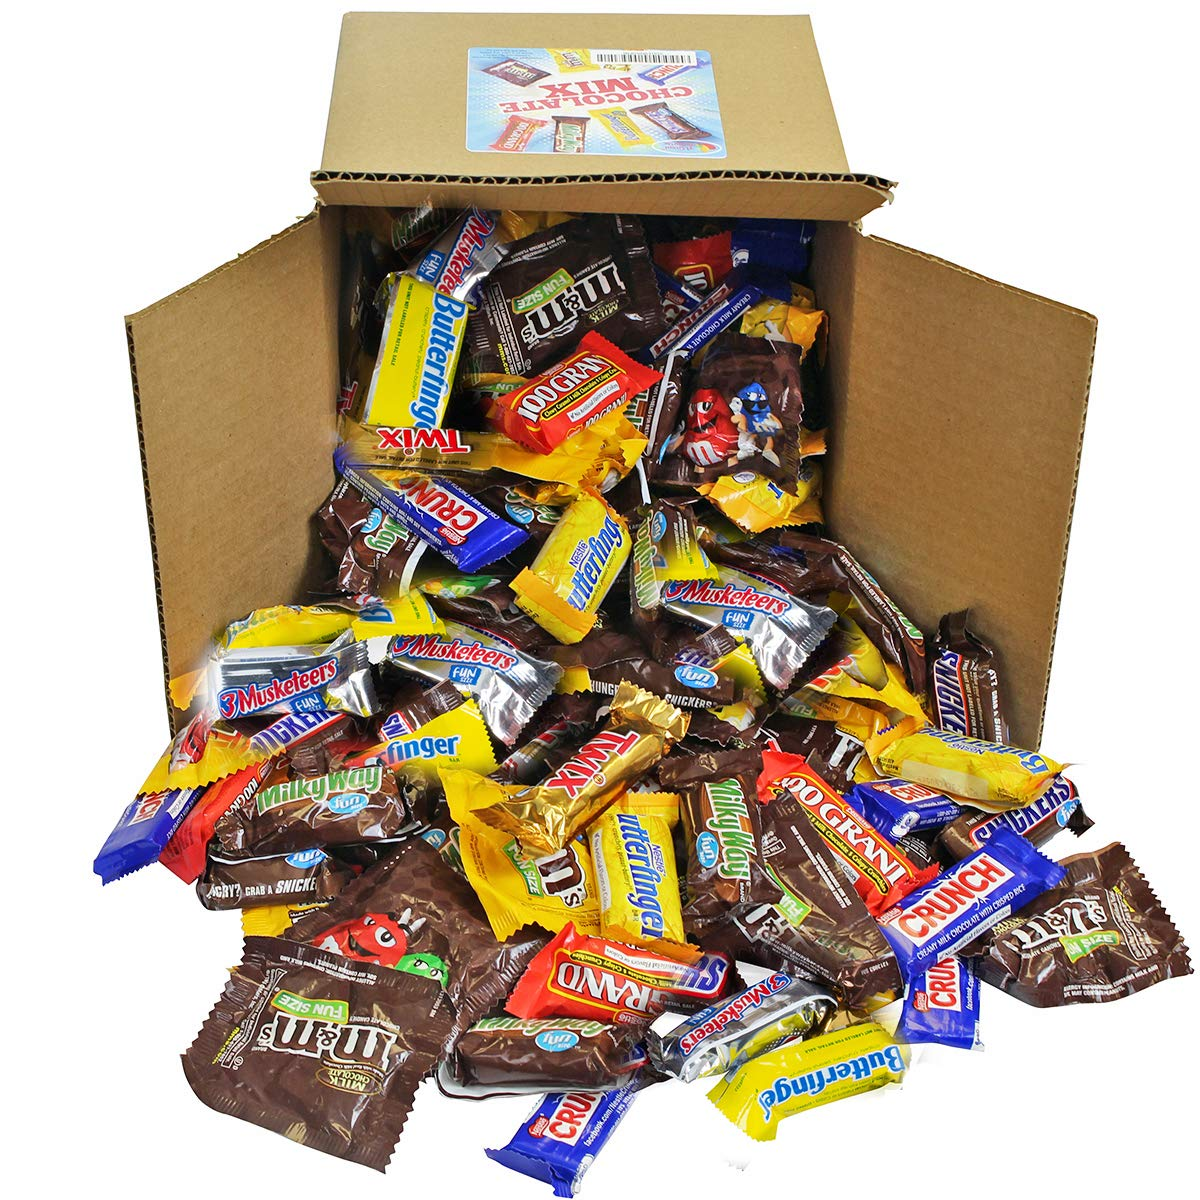 Chocolate Variety Pack - Fun Size Candy - All Your Favorite Chocolate Bars Including M&M, Snickers, Twix and More In 8x8x8 Bulk Box, 7.3 Lbs by A Great Surprise